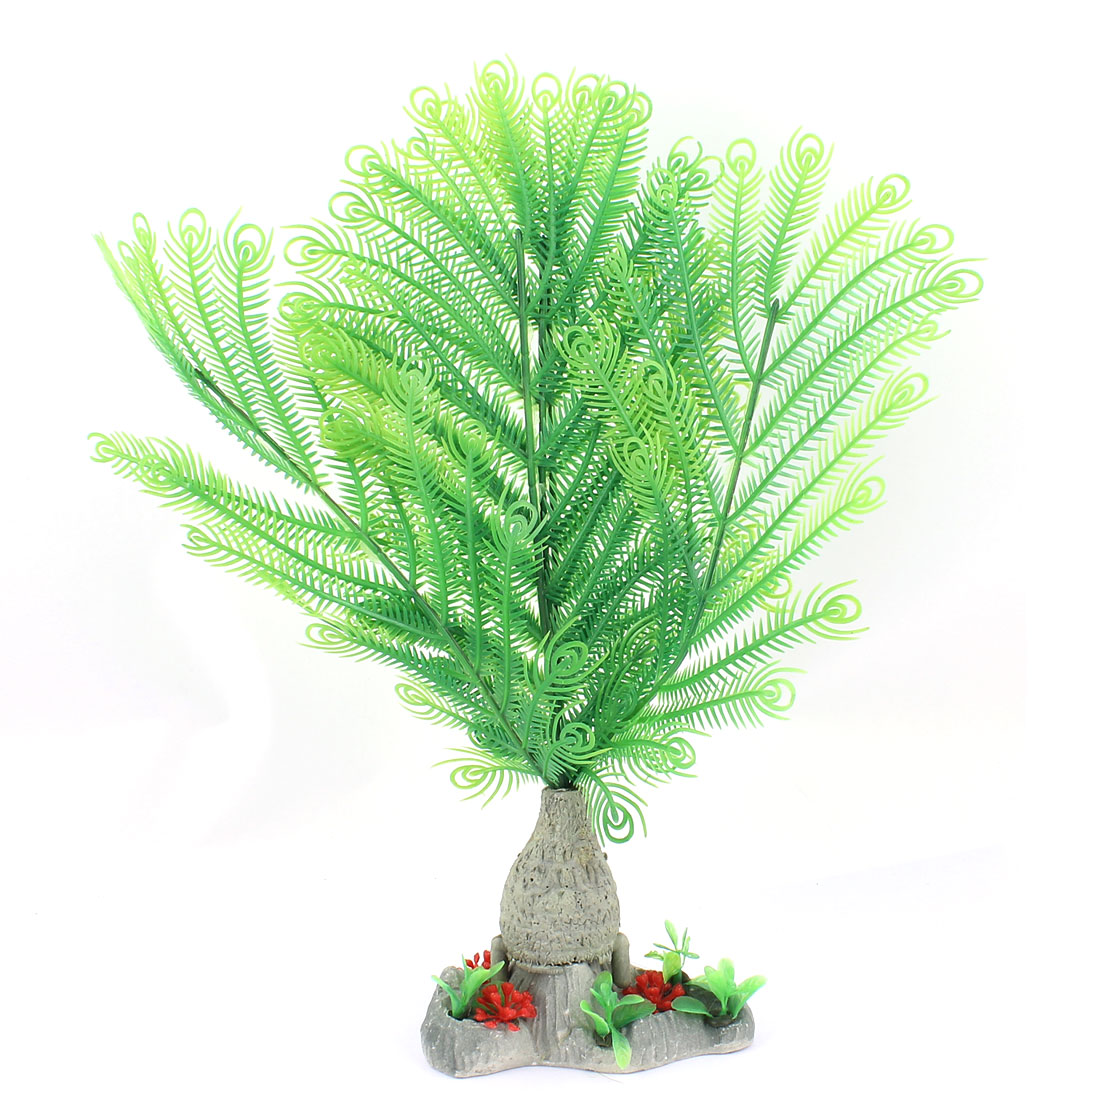 Plastic Underwater Aquatic Plant Fish Tank Aquarium Decor 33cm High Green